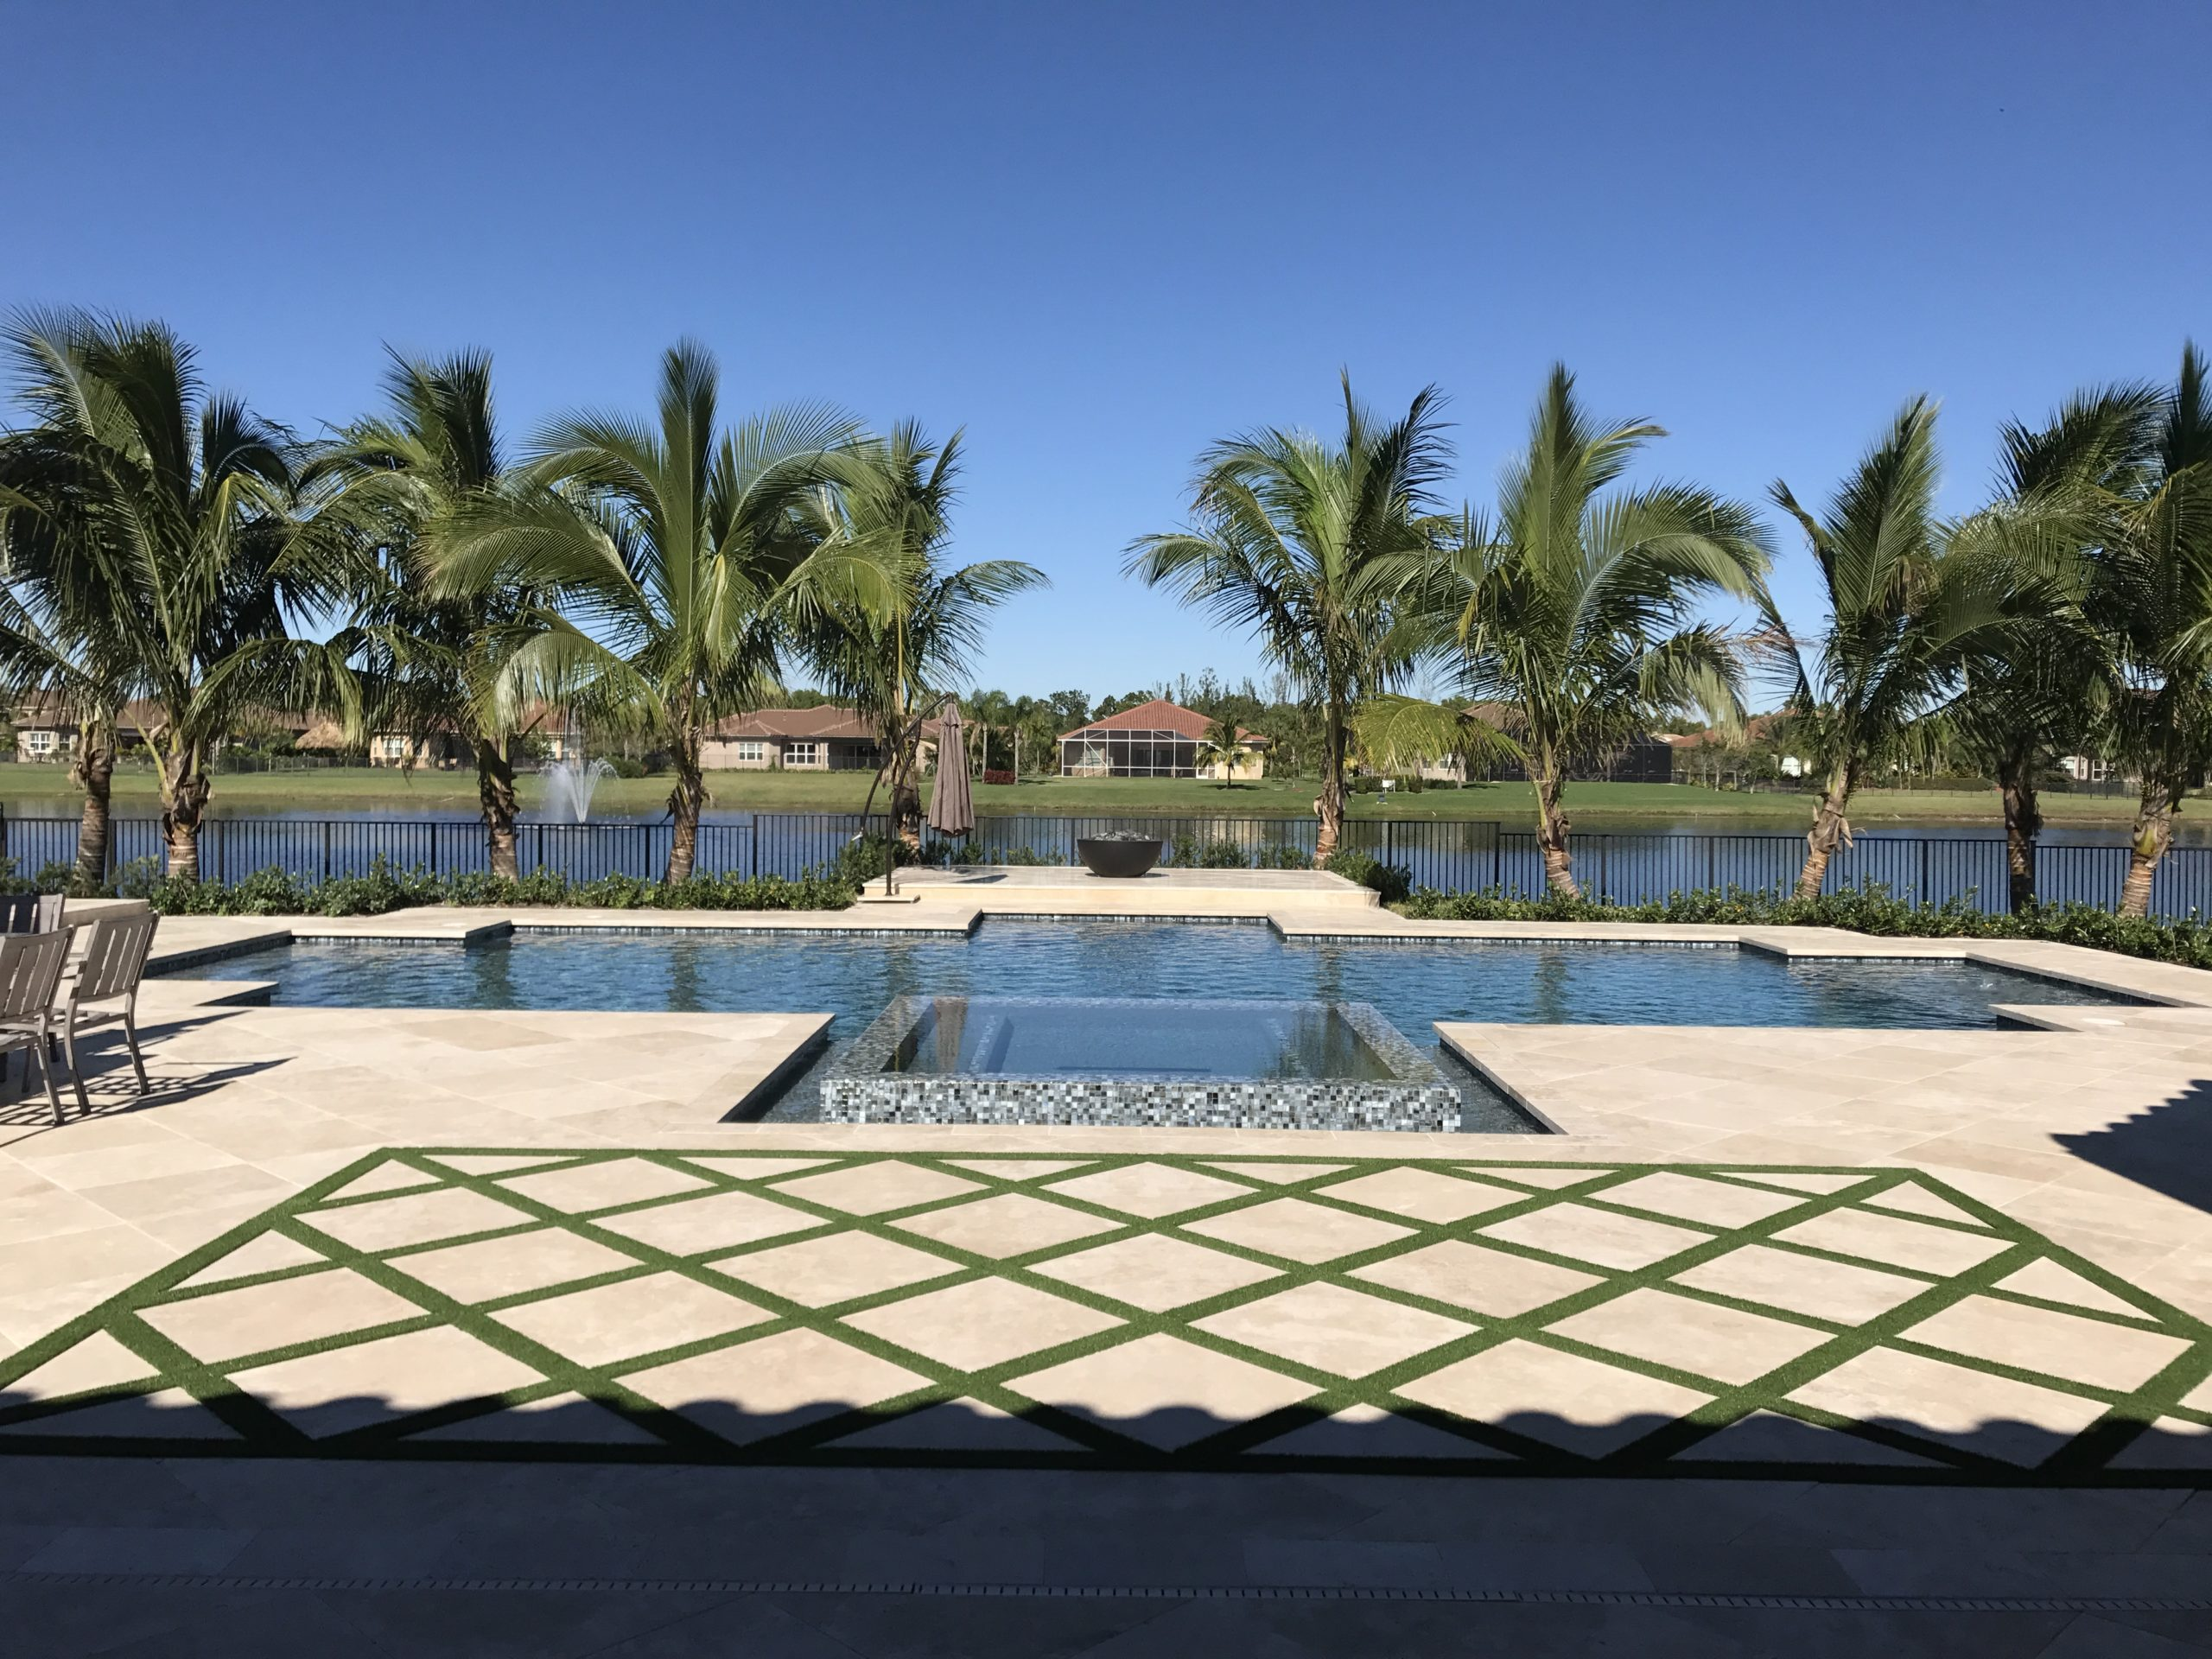 rhr pools of jupiter fl custom pool with sunken spa and dual steps